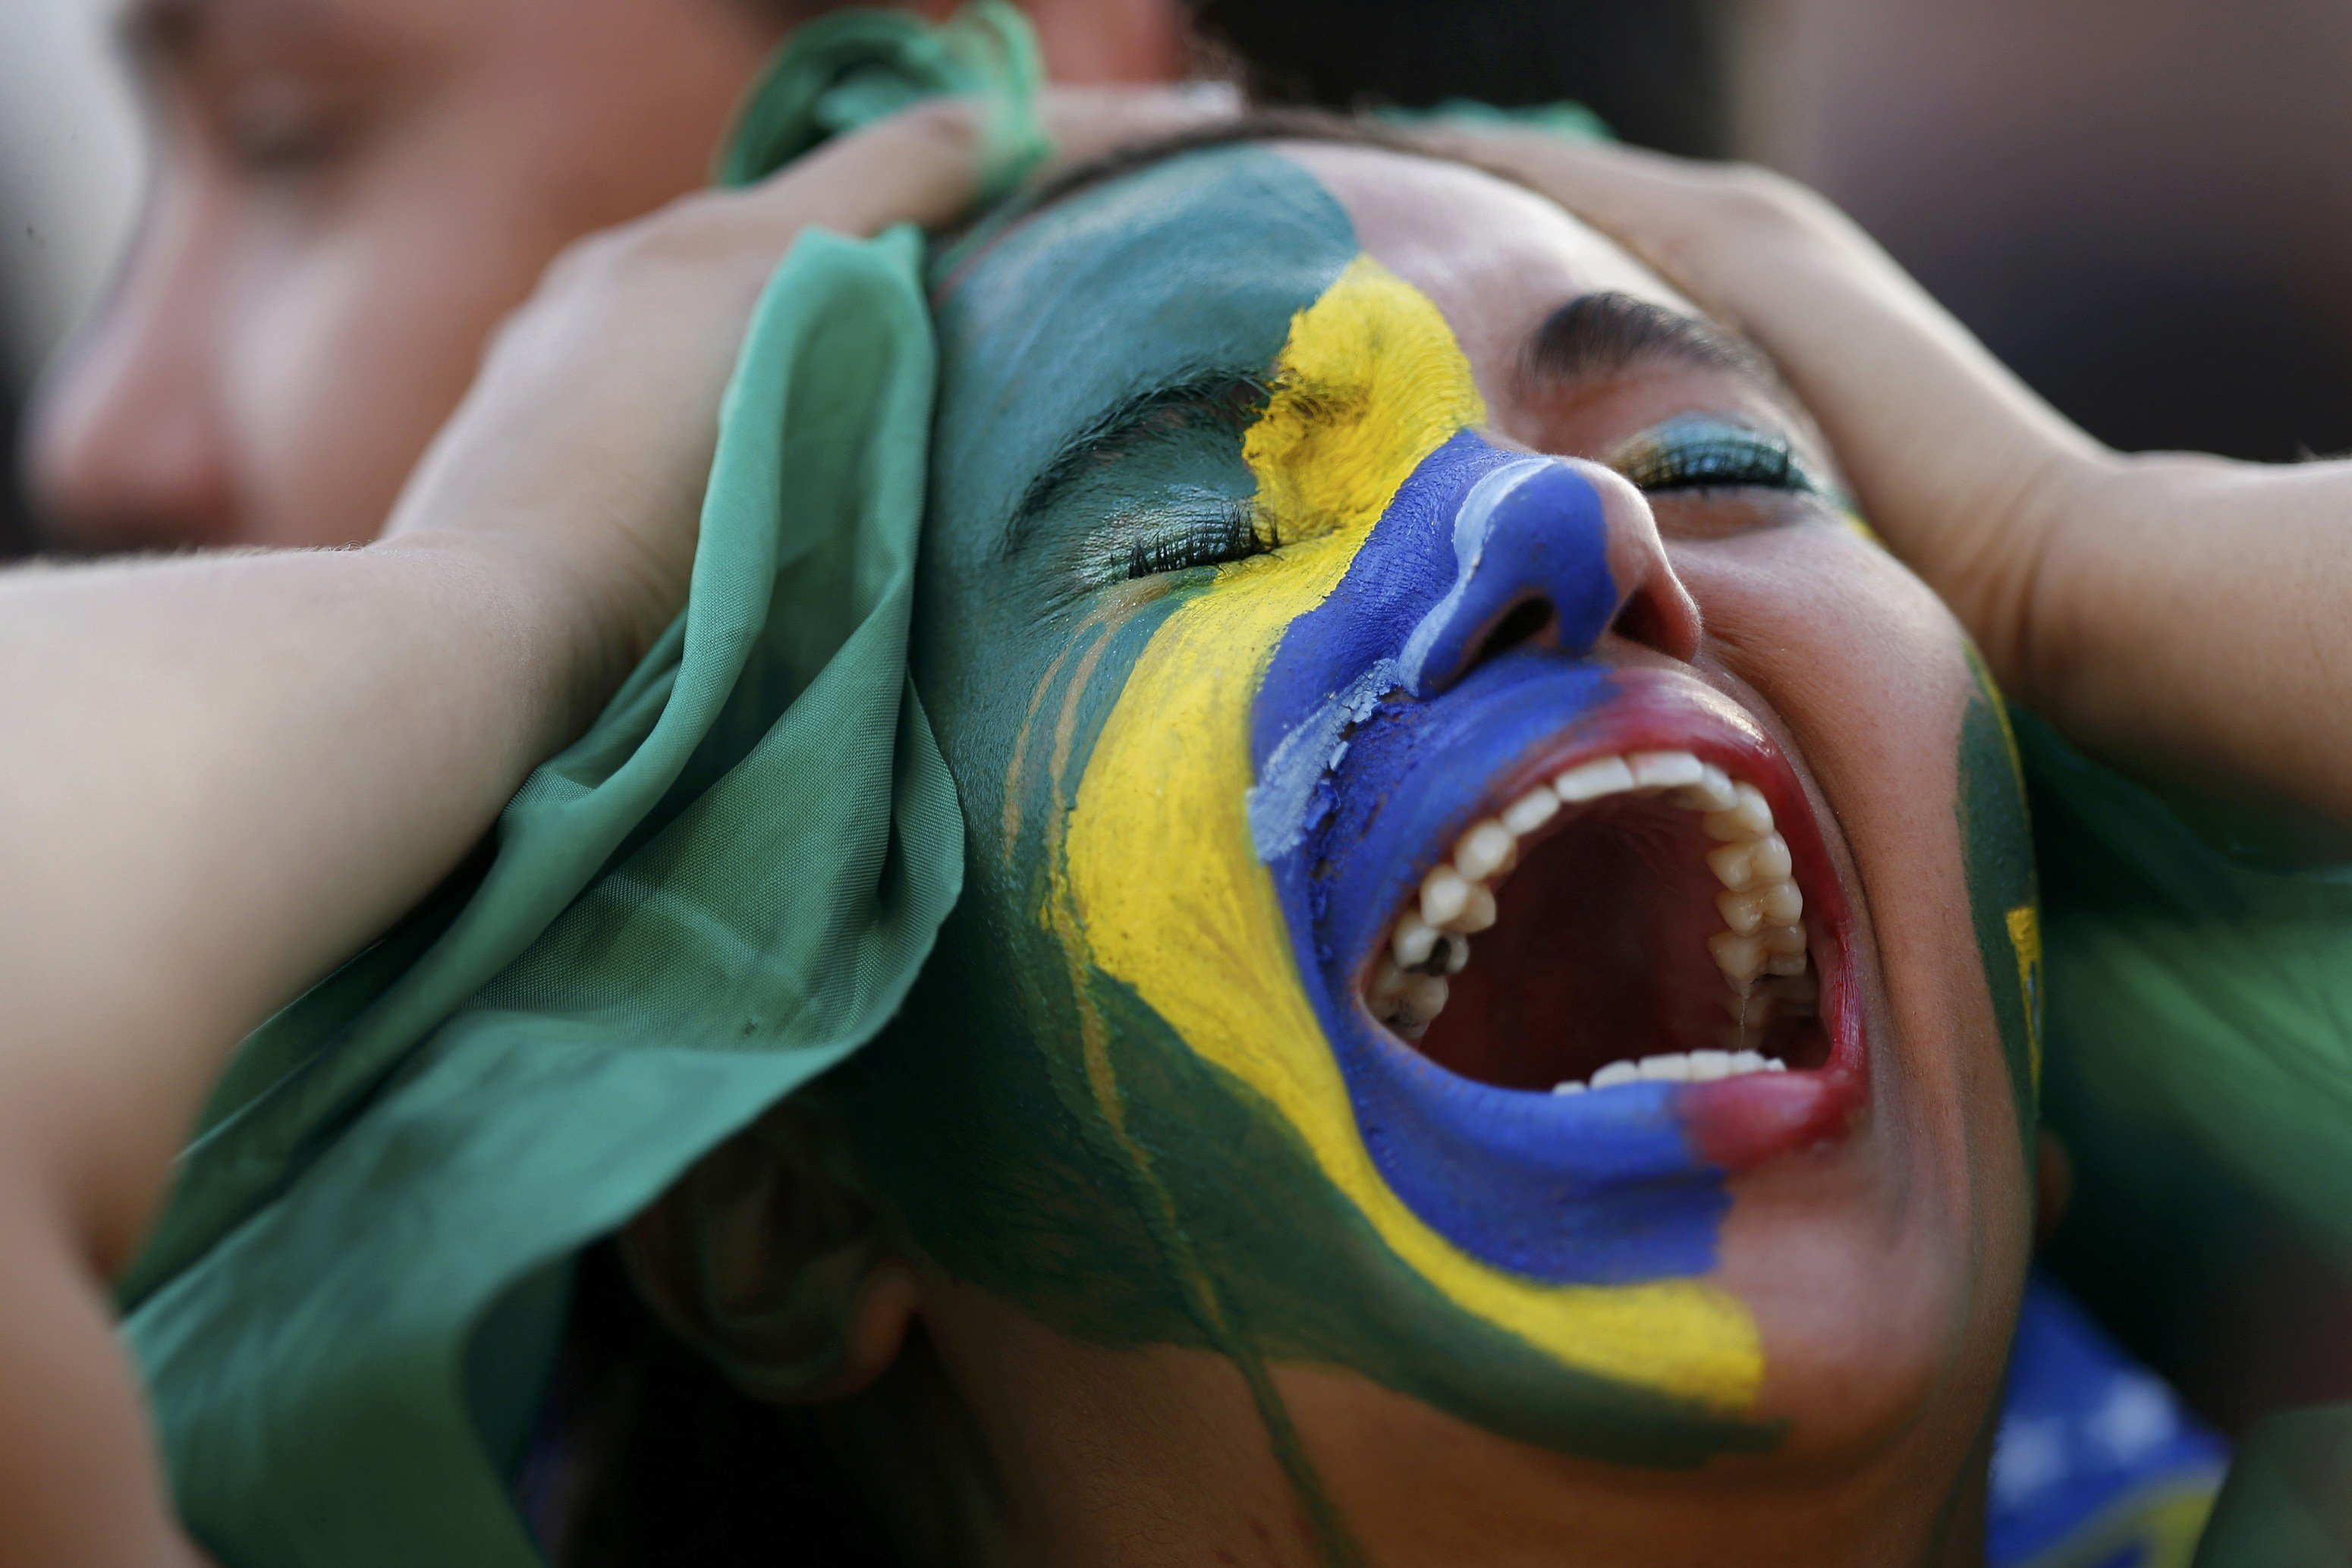 Fans of Brazil react while watching a broadcast of the 2014 World Cup semi-final against Germany at the Fan Fest in Brasilia, Brazil on July 8, 2014.